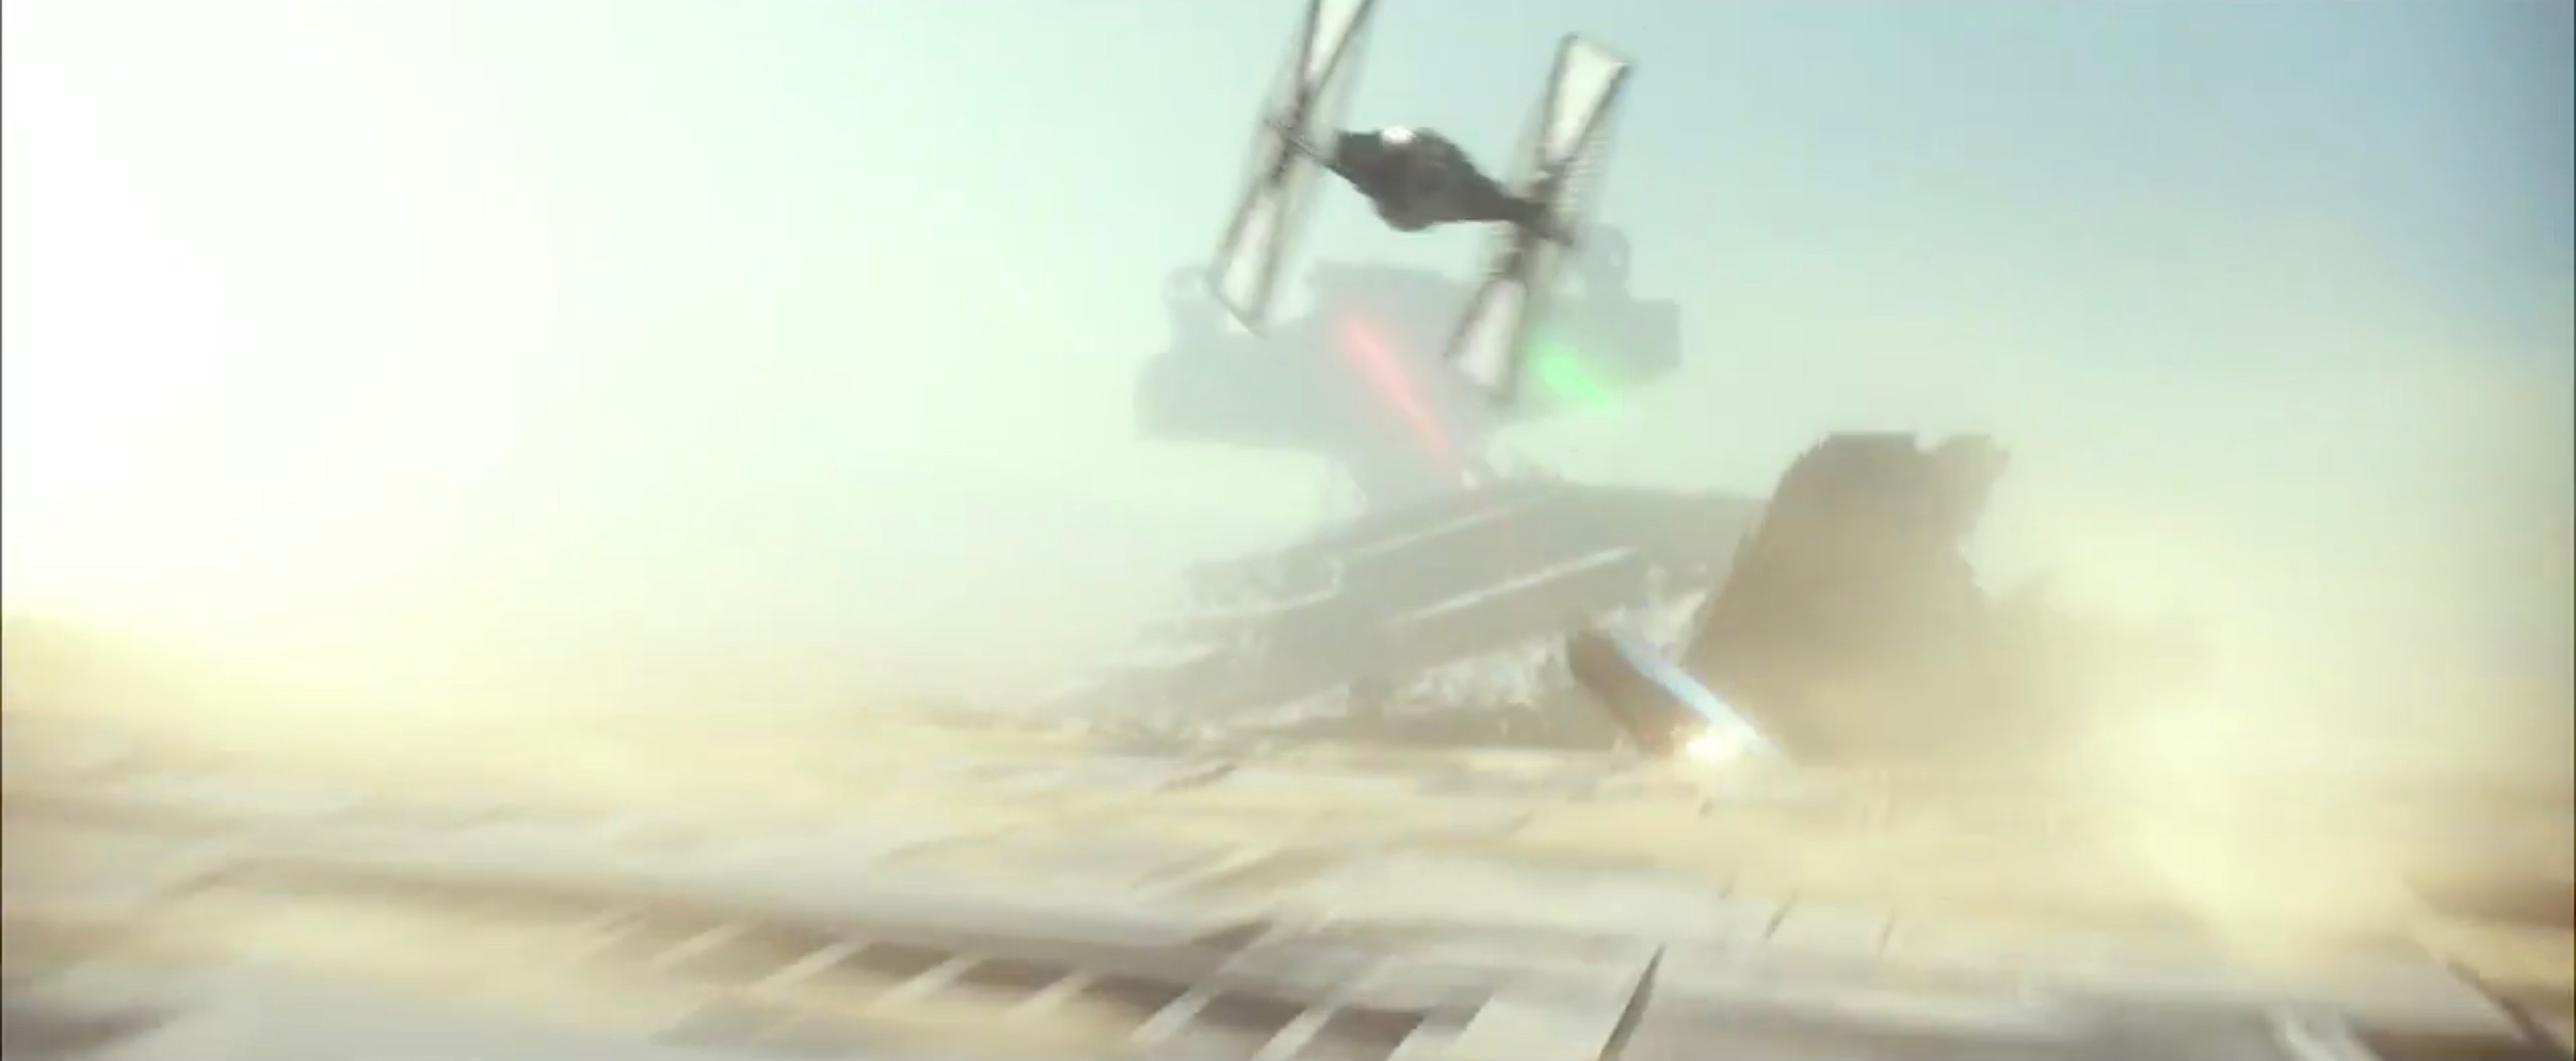 Star Wars VII Trailer Analysis - 7 of 20